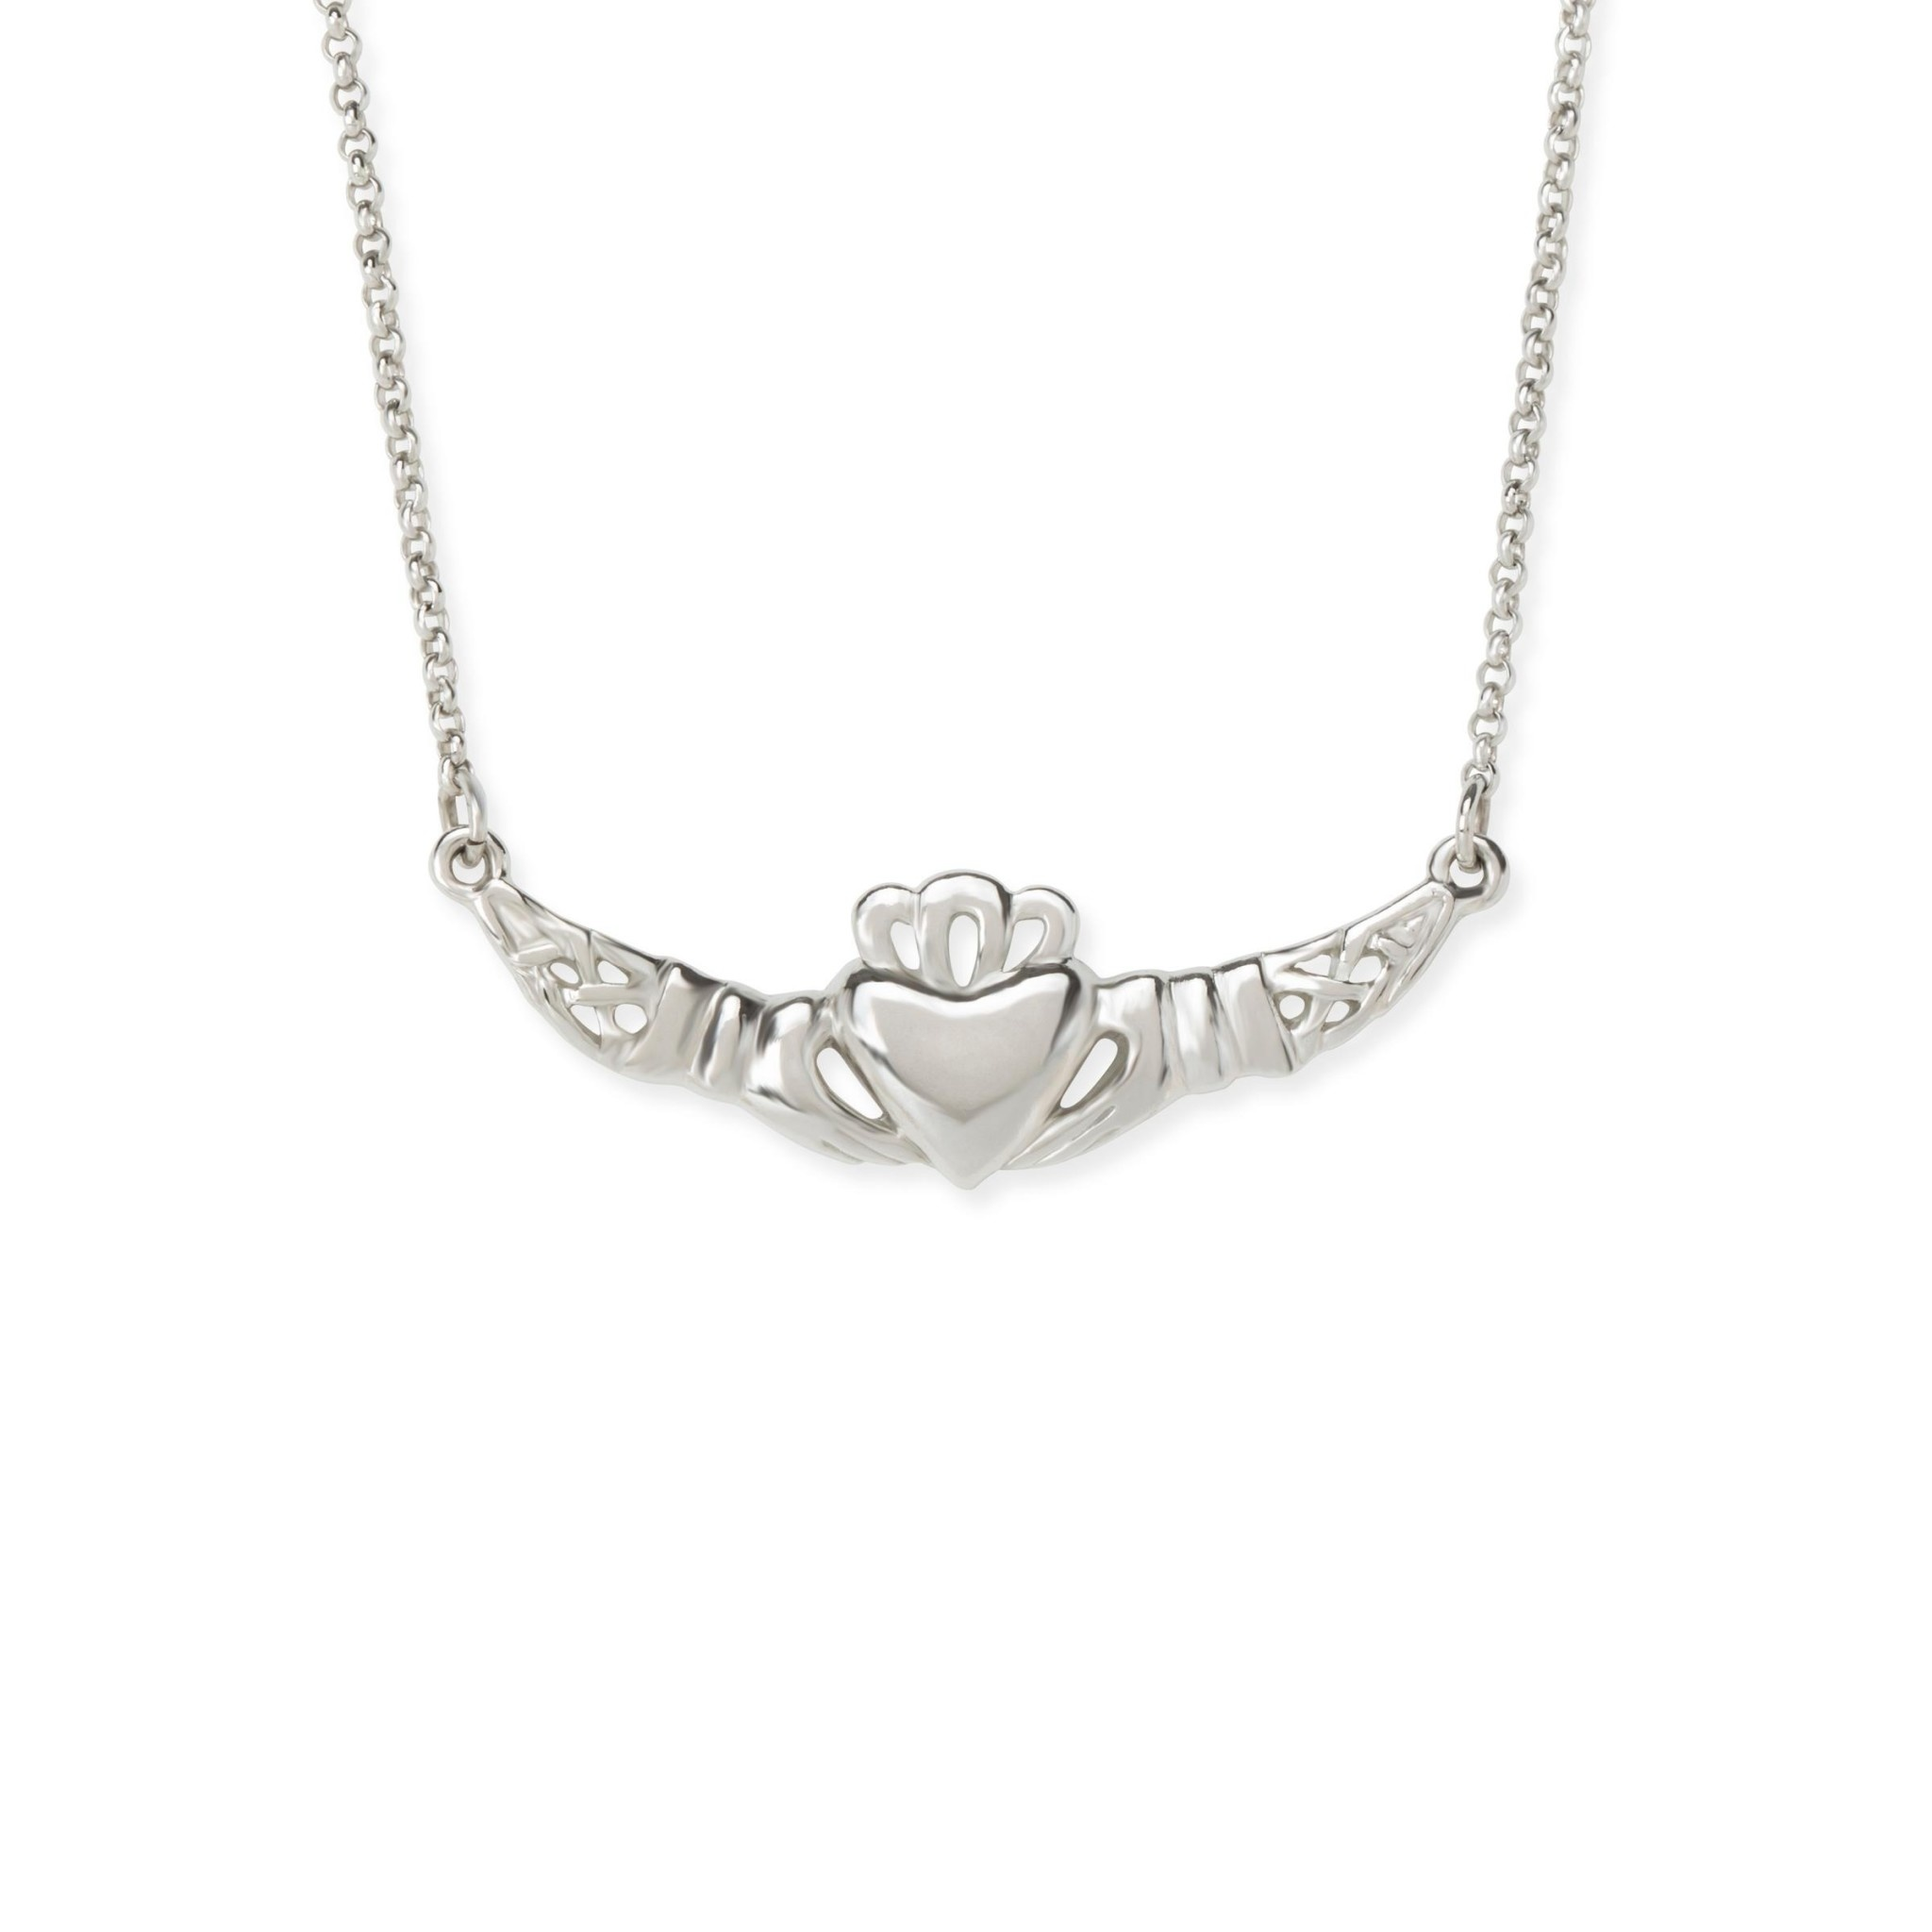 Love Loyalty Friendship Necklace Silver NK265S